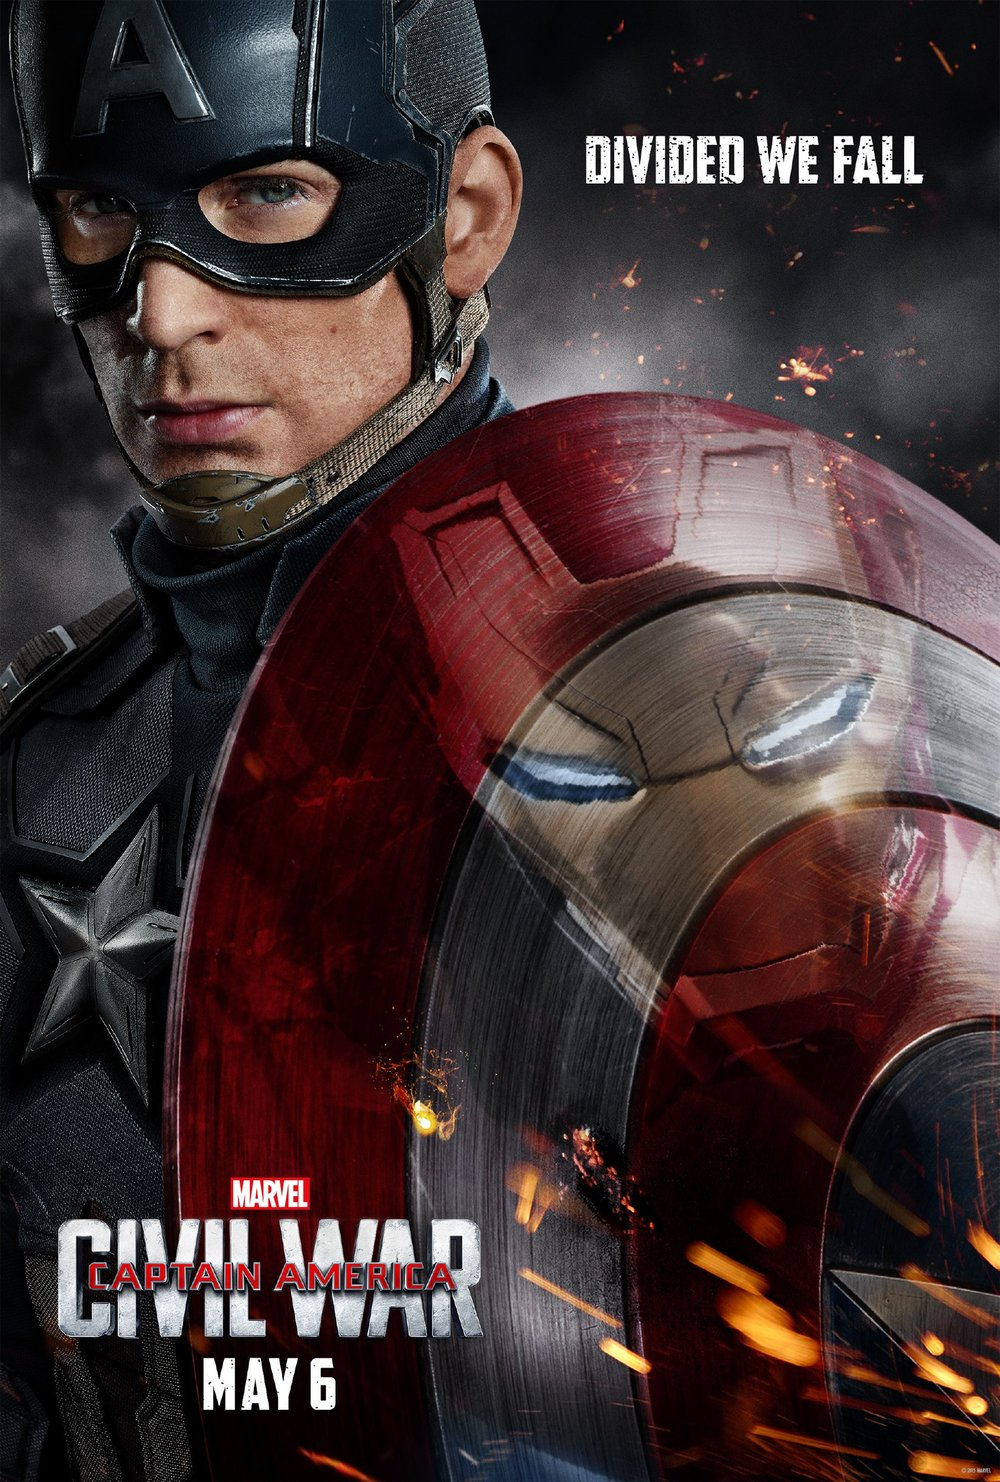 Captain America: Civil War (2016) - DIRECTED BY: ANTHONY AND JOE RUSSOSTARRING: CHRIS EVANS, ROBERT DOWNEY JR., SCARLETT JOHANSSONRATED: PG-13 FOR EXTENDED SEQUENCES OF VIOLENCE, ACTION AND MAYHEMRUNNING TIME: 2 HOURS 27 MINTMM: 4 OUT OF 5 STARSSTRENGTHS: THEMES, ACTION, NEW CHARACTERS, BELIEVABILITYWEAKNESSES: WINTER SOLIDER, MOMENTARY LAPSES IN GRAPHICS, PULLS PUNCHES, LAME VILLAIN